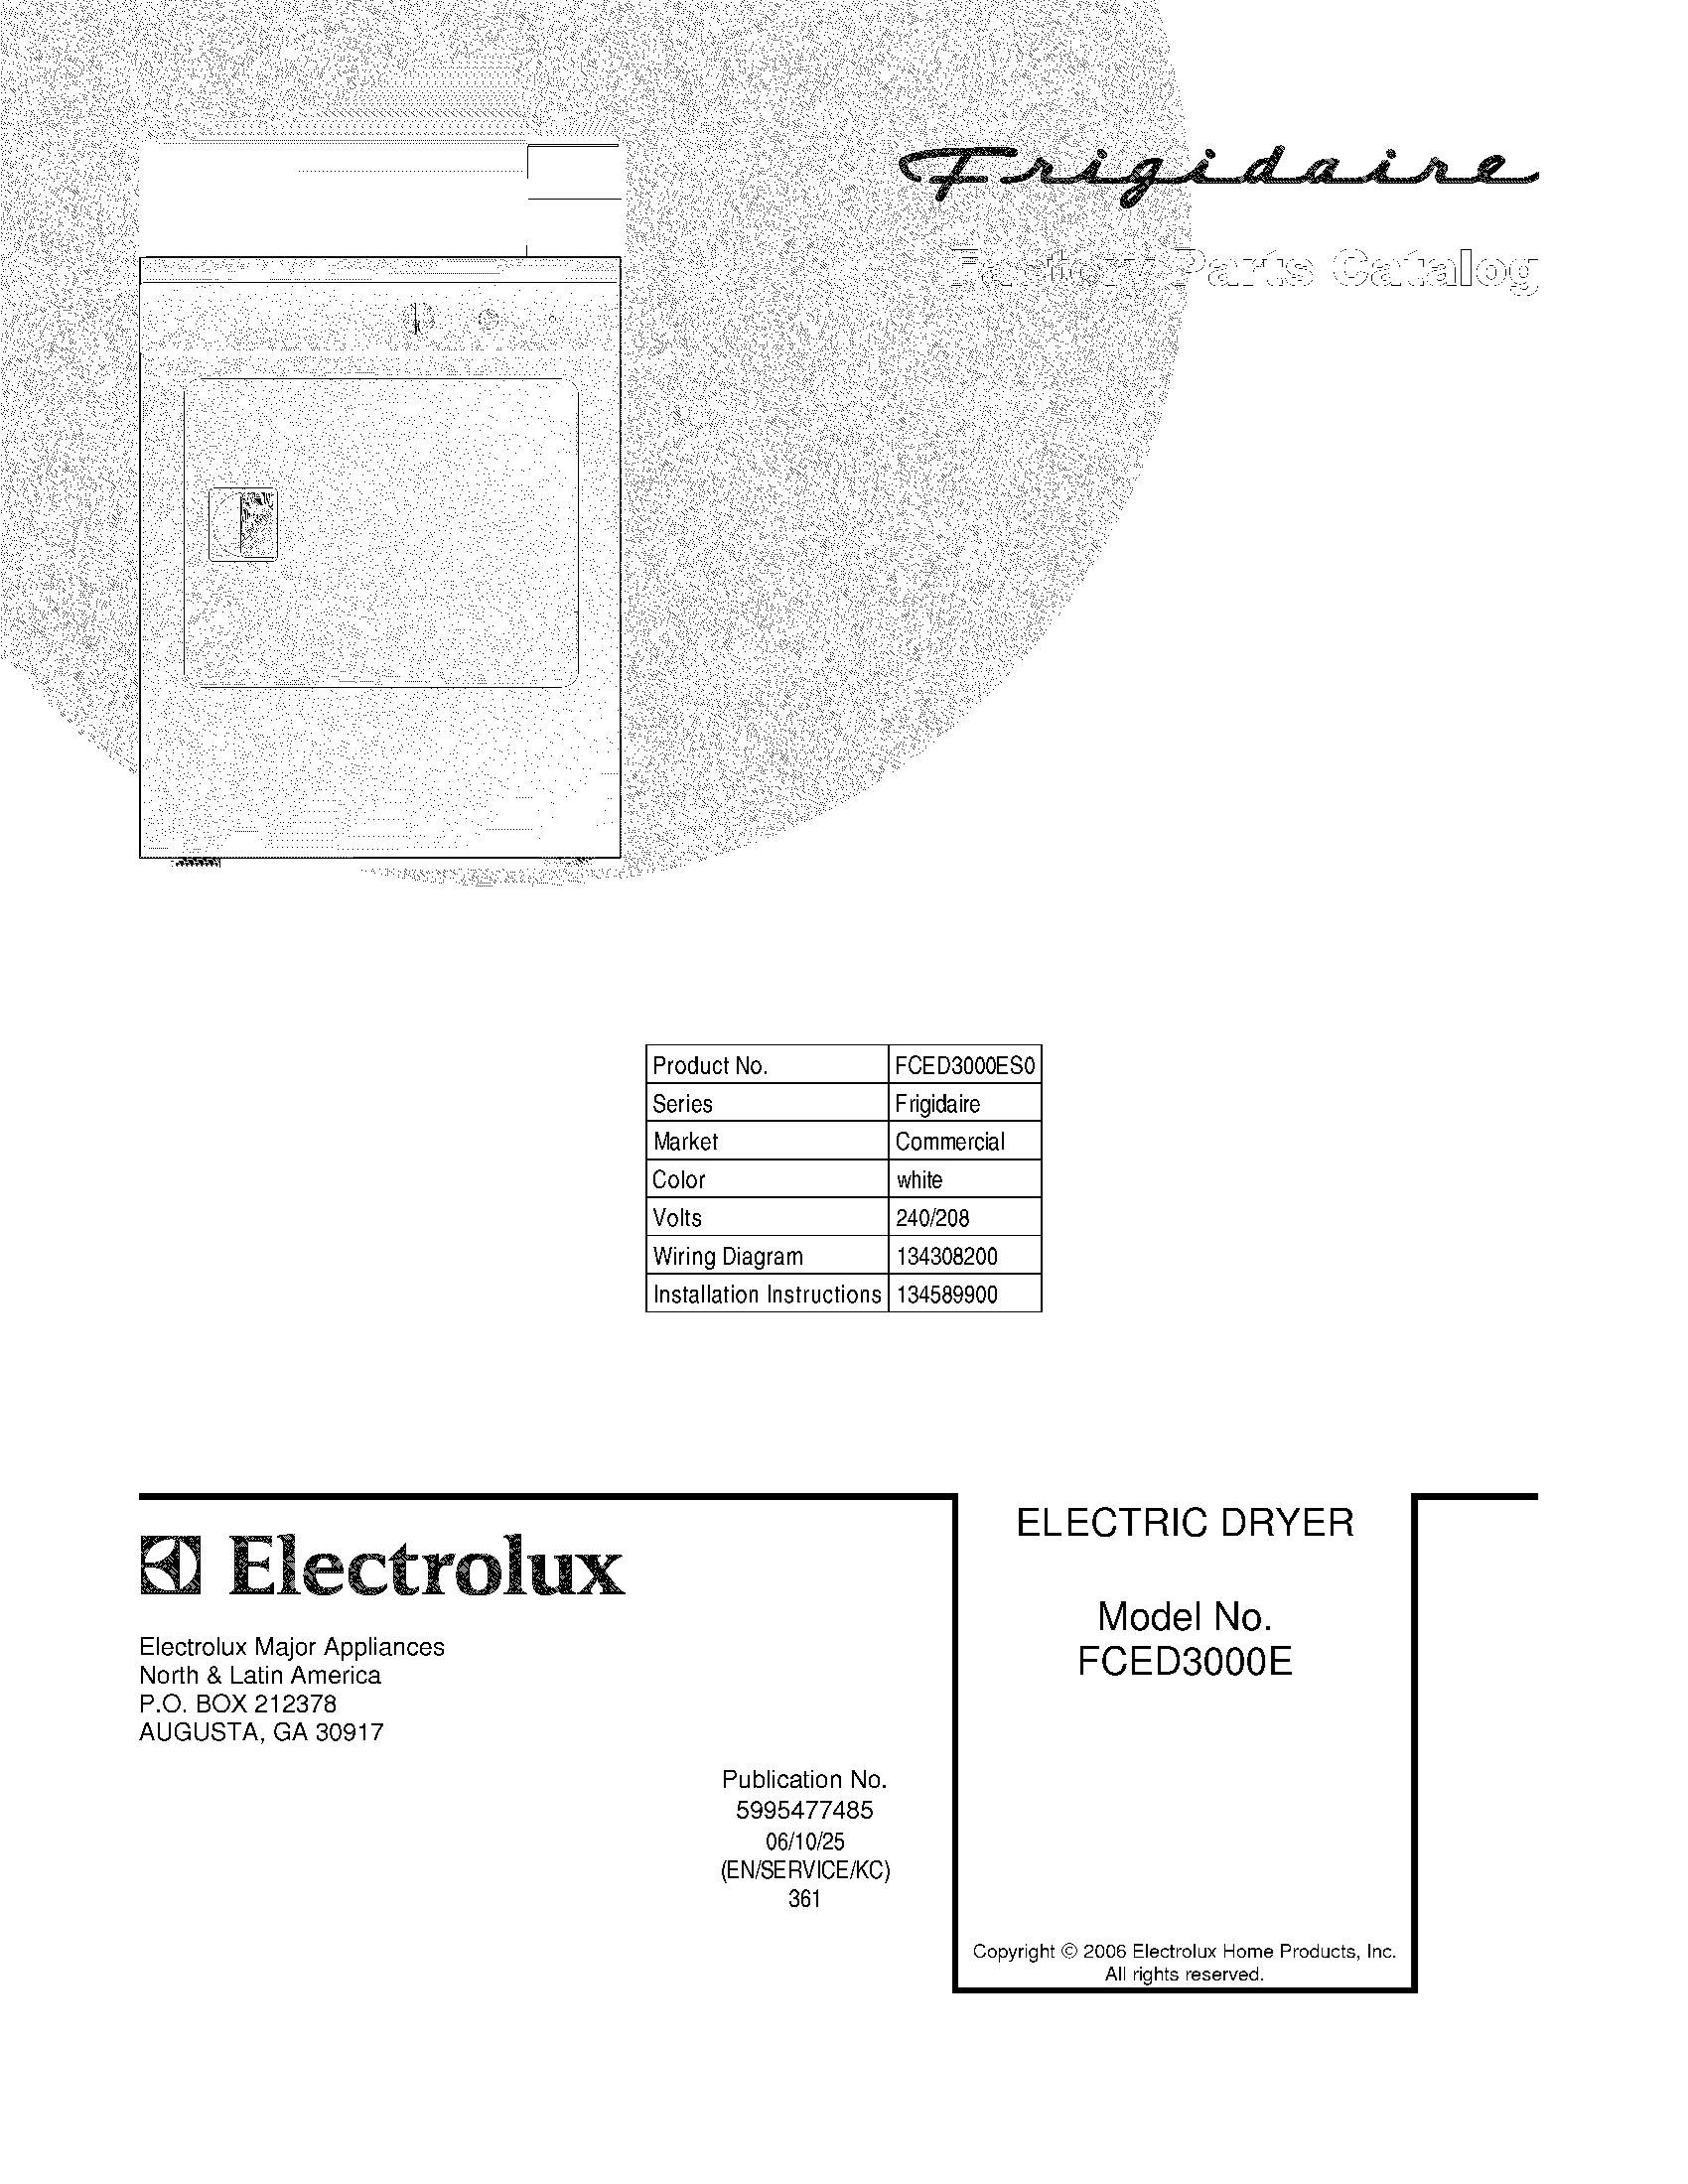 ElectroluxImg_19000101 20150717_00041943?width\=1000 wire diagram frigidaire coin op dryer ge dryer parts diagram  at gsmx.co